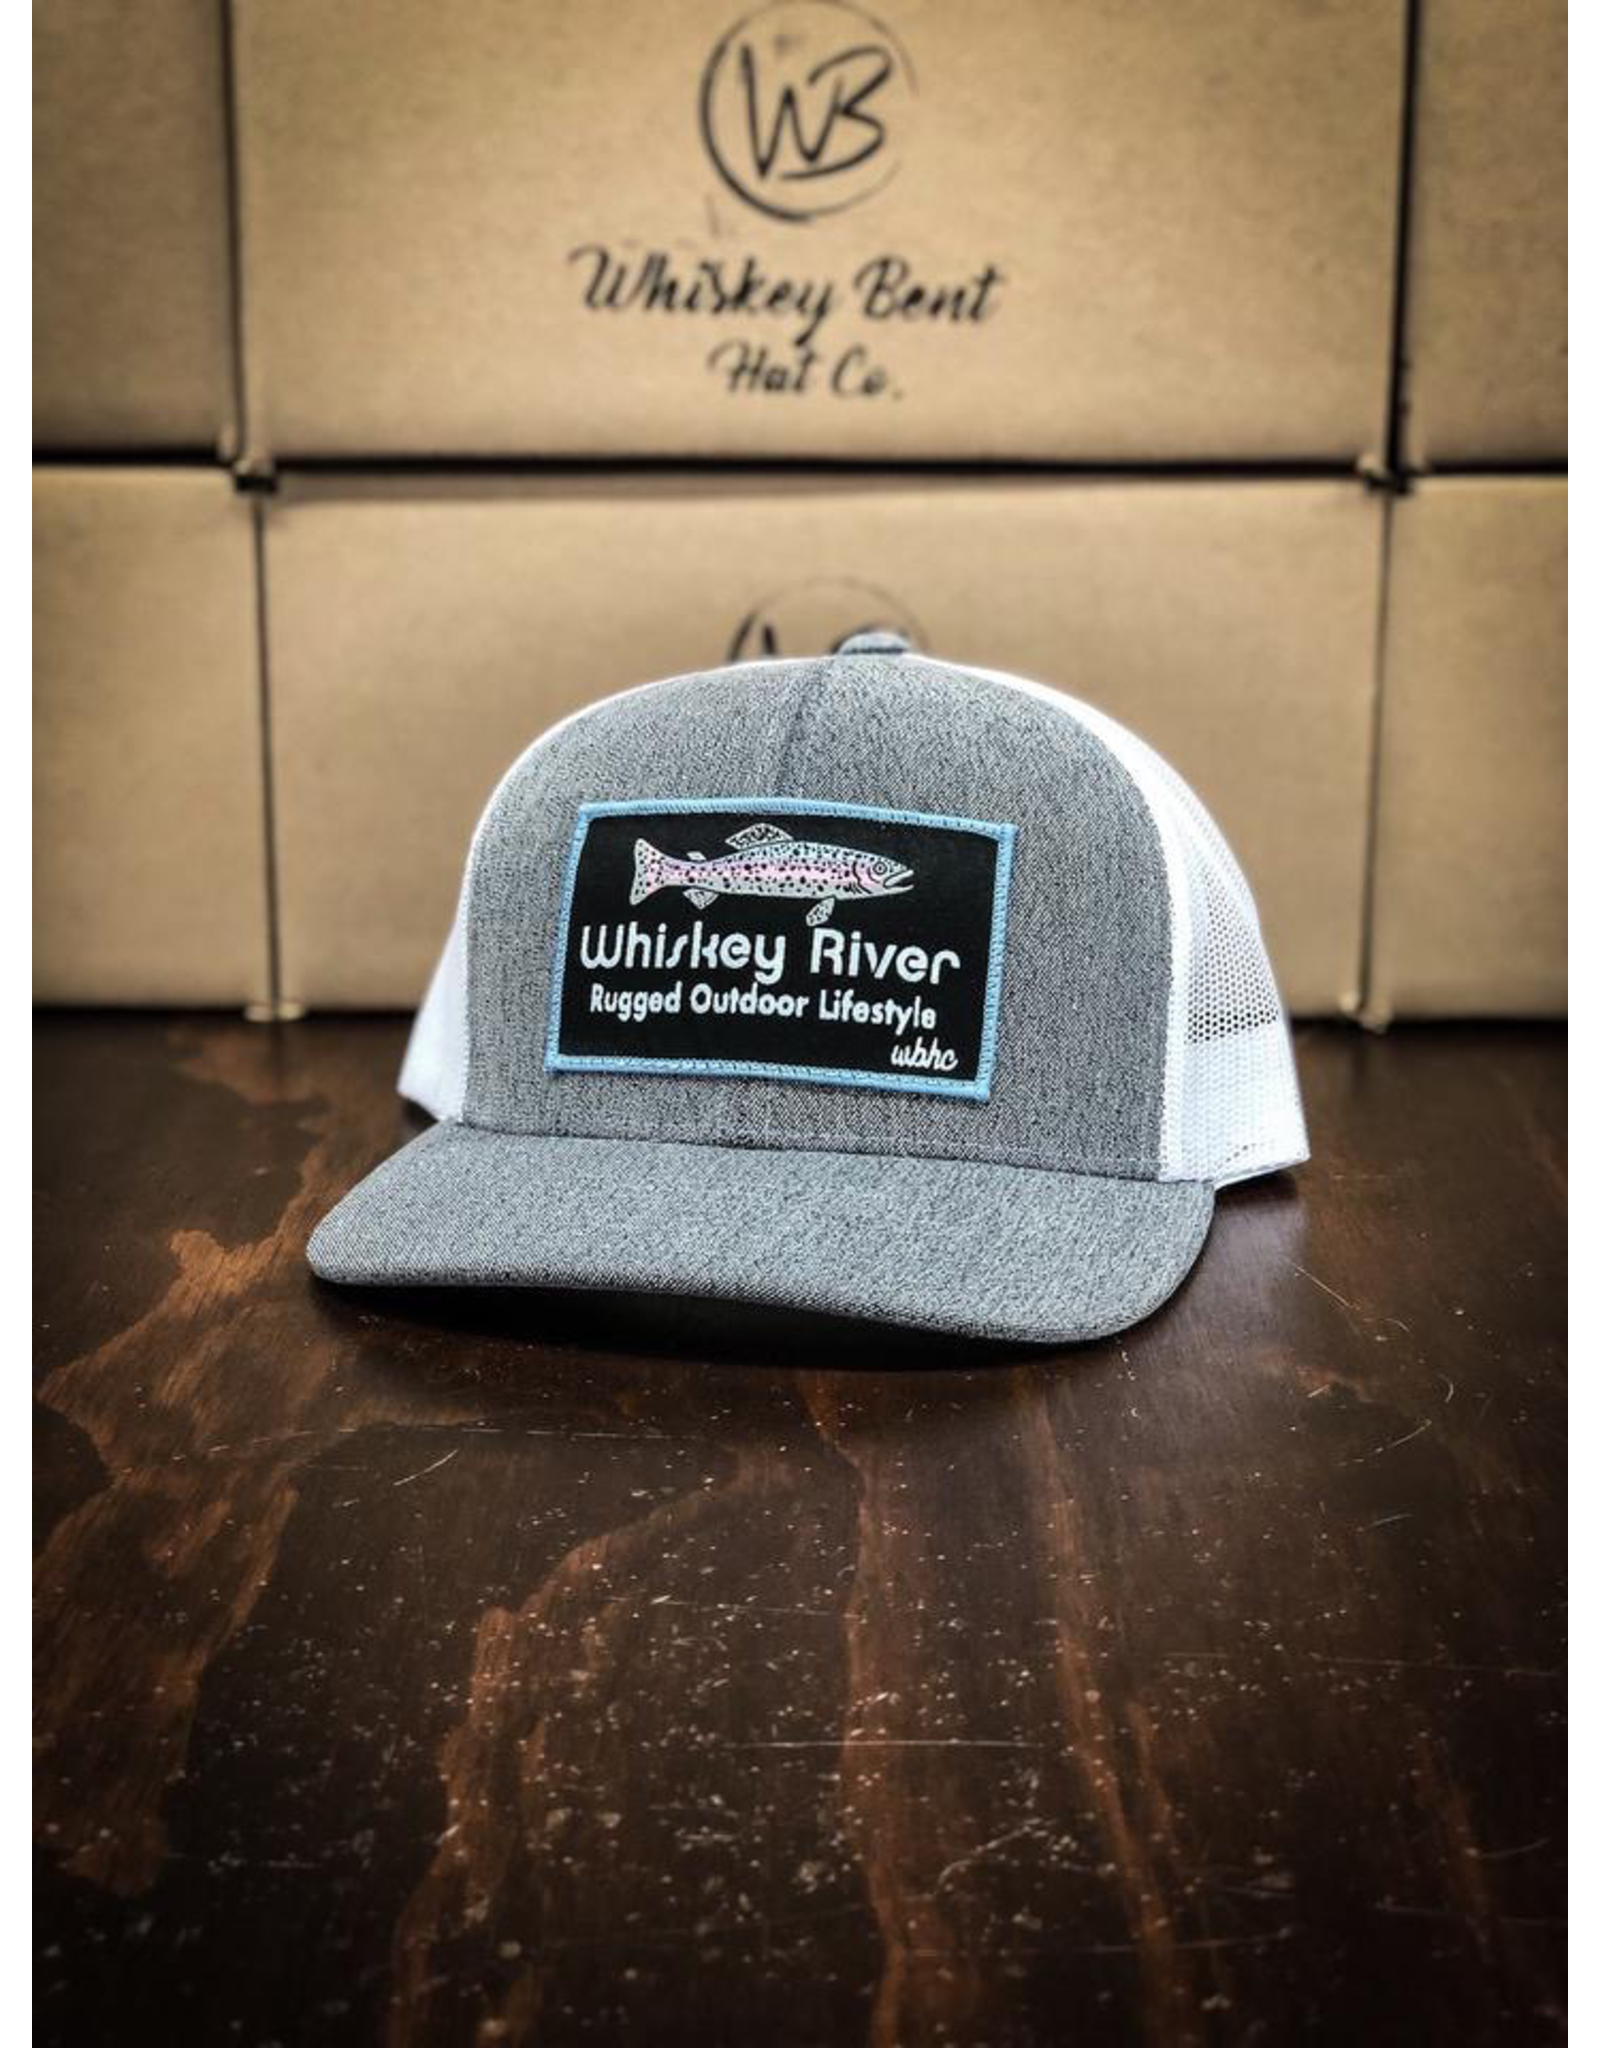 Hats WHISKEY BENT HAT CO. Whiskey River